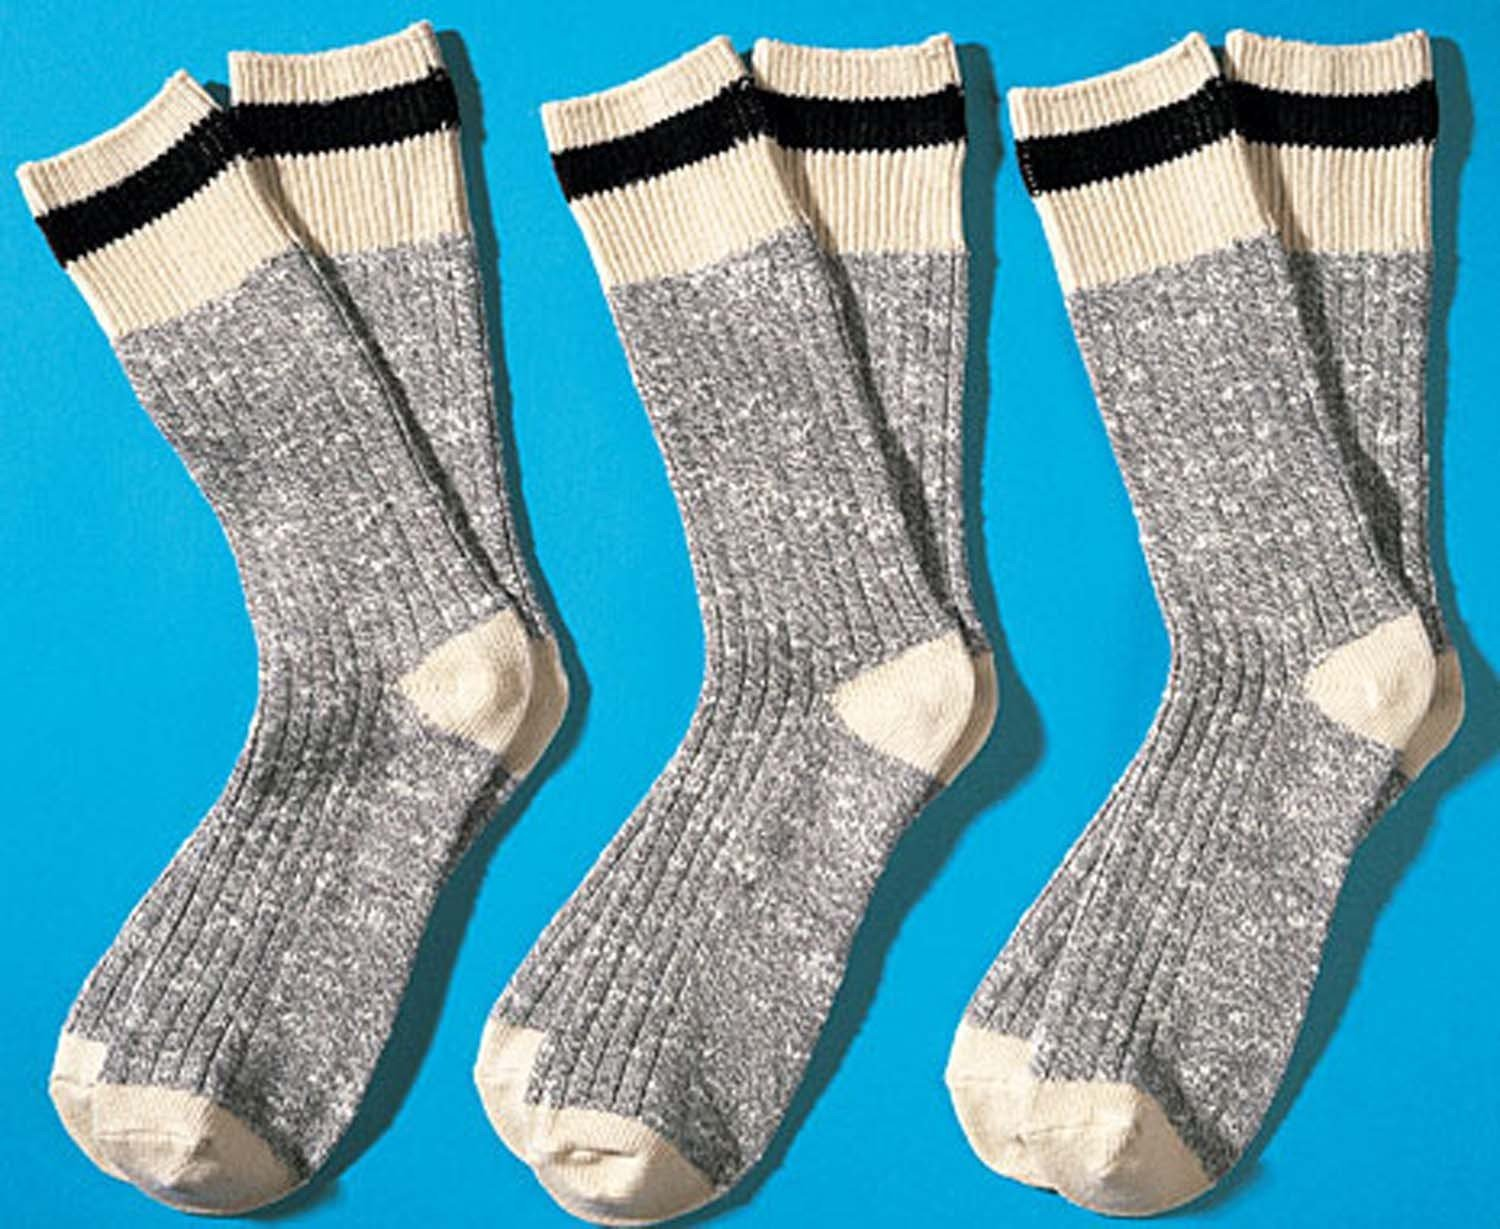 H-Worker-Socken,3er-Set,ecru 3942 009